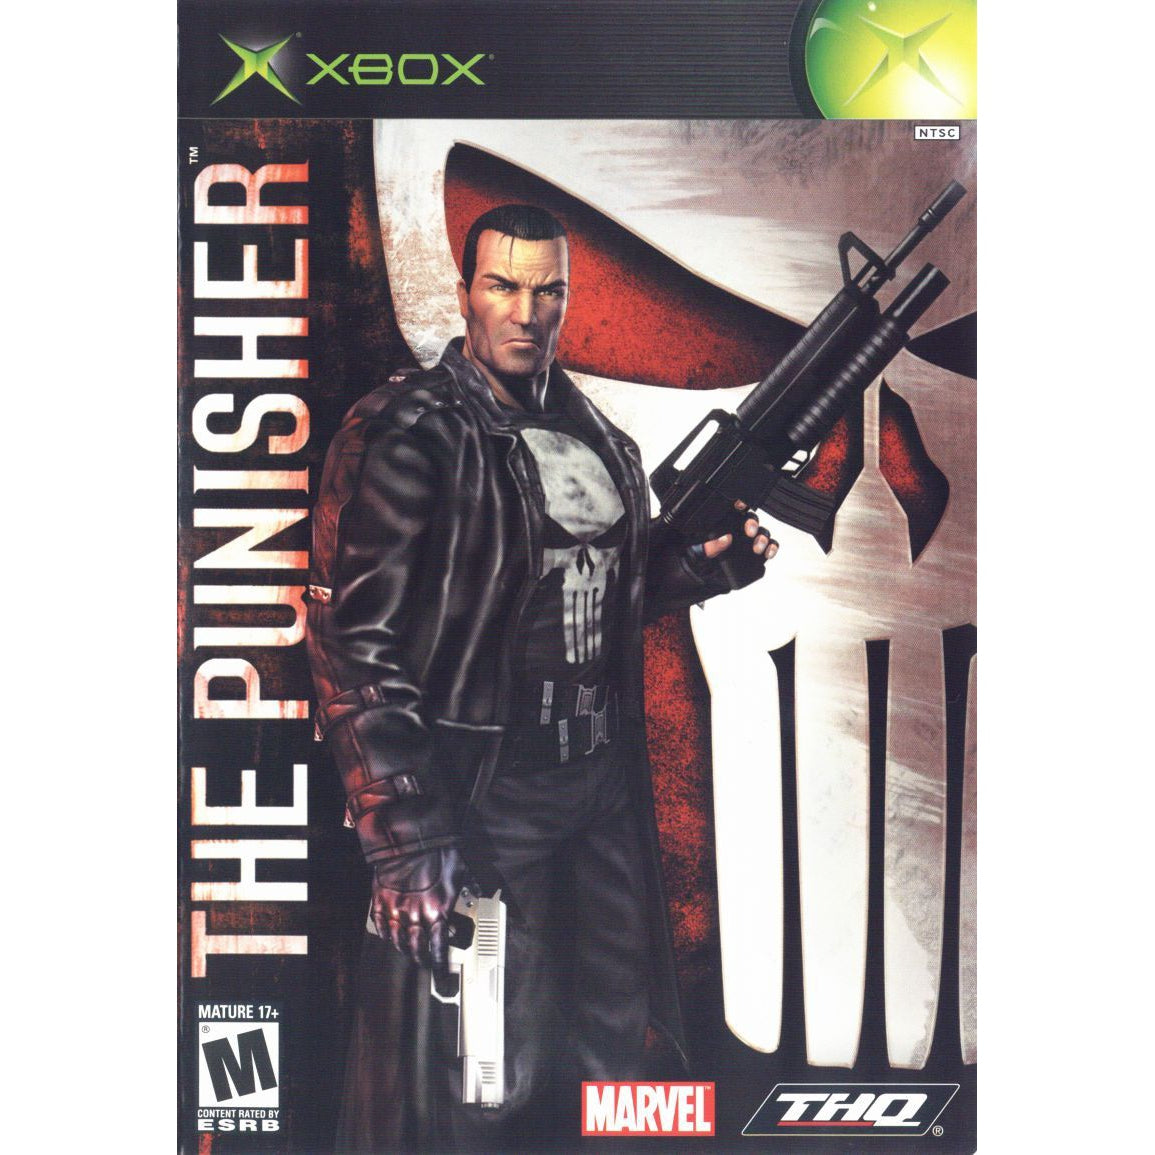 The Punisher - Xbox Game Complete - YourGamingShop.com - Buy, Sell, Trade Video Games Online. 120 Day Warranty. Satisfaction Guaranteed.